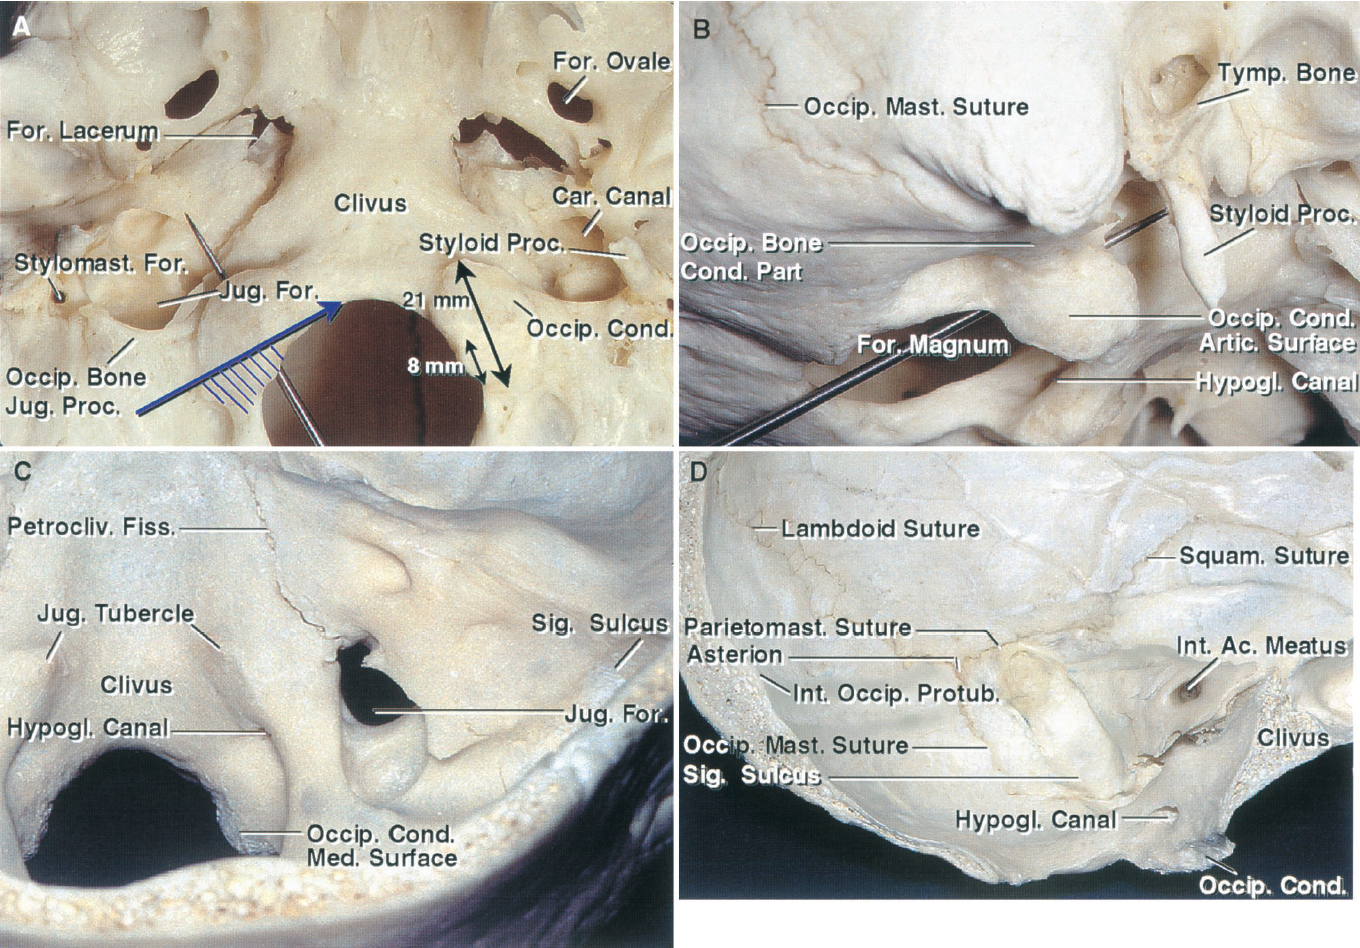 FIGURE 7.1. Osseous relationships. A, inferior view of the occipital condyles and foramen magnum. The occipital condyles are ovoid structures located along the lateral margin of the anterior half of the foramen magnum. Their articular surfaces are convex, face downward and laterally, and articulate with the superior facet of C1. A probe inserted through the hypoglossal canal passes forward approximately 45 degrees from the midsagittal plane in an anterolateral direction. The hypoglossal canal is located above the middle third of the occipital condyle and is directed from posterior to anterior and from medial to lateral. The intracranial end of the hypoglossal canal (small oval) is located approximately 5 mm above the junction of the posterior and middle third of the occipital condyle and approximately 8 mm from the posterior edge of the condyle. The extracranial end of the canal is located approximately 5 mm above the junction of the anterior and middle third of the condyle. The average length of the longest axis of the condyle is 21 mm. The large arrow shows the direction of the transcondylar approach and the cross-hatched area shows the portion of the occipital condyle that can be removed without exposing the hypoglossal nerve in the hypoglossal canal. The condylar fossa is frequently the site of a canal, the condylar canal, which transmits the posterior condylar emissary vein that connects the vertebral venous plexus with the sigmoid sinus just proximal to the jugular bulb. The condylar canal passes above and usually does not communicate with the hypoglossal canal. The jugular process of the occipital bone extends laterally from the posterior half of the occipital condyle to form the posterior margin of the jugular foramen. The portion of the jugular process located immediately behind the jugular foramen serves as the site of attachment for the rectus capitis lateralis muscle. The stylomastoid foramen is situated lateral to the jugular foramen. The styloid process is located anterior and slightly medial to the stylomastoid foramen. B, inferolateral view. A probe has been passed through the hypoglossal canal, which passes above occipital condyle. From its intracranial to its extracranial end it is directed forward, lateral, and slightly upward. C, superior view. The occipital condyle projects downward from the lateral margin of the anterior half of the foramen magnum. The intracranial entrance of the hypoglossal canal is located above the condyle. The jugular tubercles are located above and anterior to the hypoglossal canals. The jugular process of the occipital bone extends laterally from the condyles to form the posterior margin of the jugular foramen. The sigmoid sinus crosses the occipitomastoid suture and turns in a hooklike groove on the upper surface of the jugular process to reach the jugular foramen. Drilling the occipital condyle increases access to the anterolateral margin of the foramen magnum. Drilling in a supracondylar location below the hypoglossal canal accesses the lateral edge of the clivus. Drilling in the supracondylar location above the hypoglossal canal accesses the jugular tubercle, which projects upward and often blocks visualization of the junction of the middle and lower clivus and the region of the pontomedullary junction during the far-lateral approach. Drilling the jugular process in a paracondylar location accesses the posterior margin of the jugular bulb, which is situated in the sigmoid portion of the jugular foramen. D, medial aspect of the occipital condyle and supracondylar region. The inner surface of the mastoid portion of the temporal bone is grooved by the sulcus of the sigmoid sinus. The asterion, the site of the junction of the lambdoid, parietomastoid, and the occipitomastoid sutures, is an important landmark used to define the transition between the transverse and sigmoid sinuses. The sigmoid sulcus crosses the occipitomastoid suture just behind the jugular foramen. The intracranial end of the hypoglossal canal is located above the junction of the posterior and middle thirds of the occipital condyle. The external occipital protuberance is located an average of 2 cm below the apex of the internal occipital protuberance and 1 cm below the lower margin of the torcular herophili. The parietal notch, located at the junction of the squamosal and parietomastoid sutures, defines the upper limit of the petrous portion of the temporal bone and the floor of the posterior portion of the middle fossa. The midportion of the parietomastoid suture approximates the anterior edge of the junction of the transverse and sigmoid sinuses. Ac., acoustic; Artic., articular; Car., carotid; Cond., condyle; Fiss., fissure; For., foramen; Hypogl., hypoglossal; Int., internal; Jug., jugular; Mast., mastoid; Med., medial; Occip., occipital; Parietomast., parietomastoid; Petrocliv., petroclival; Proc., process; Protub., protuberance; Sig., sigmoid; Squam., squamosal; Stylomast., stylomastoid; Tymp., tympanic.